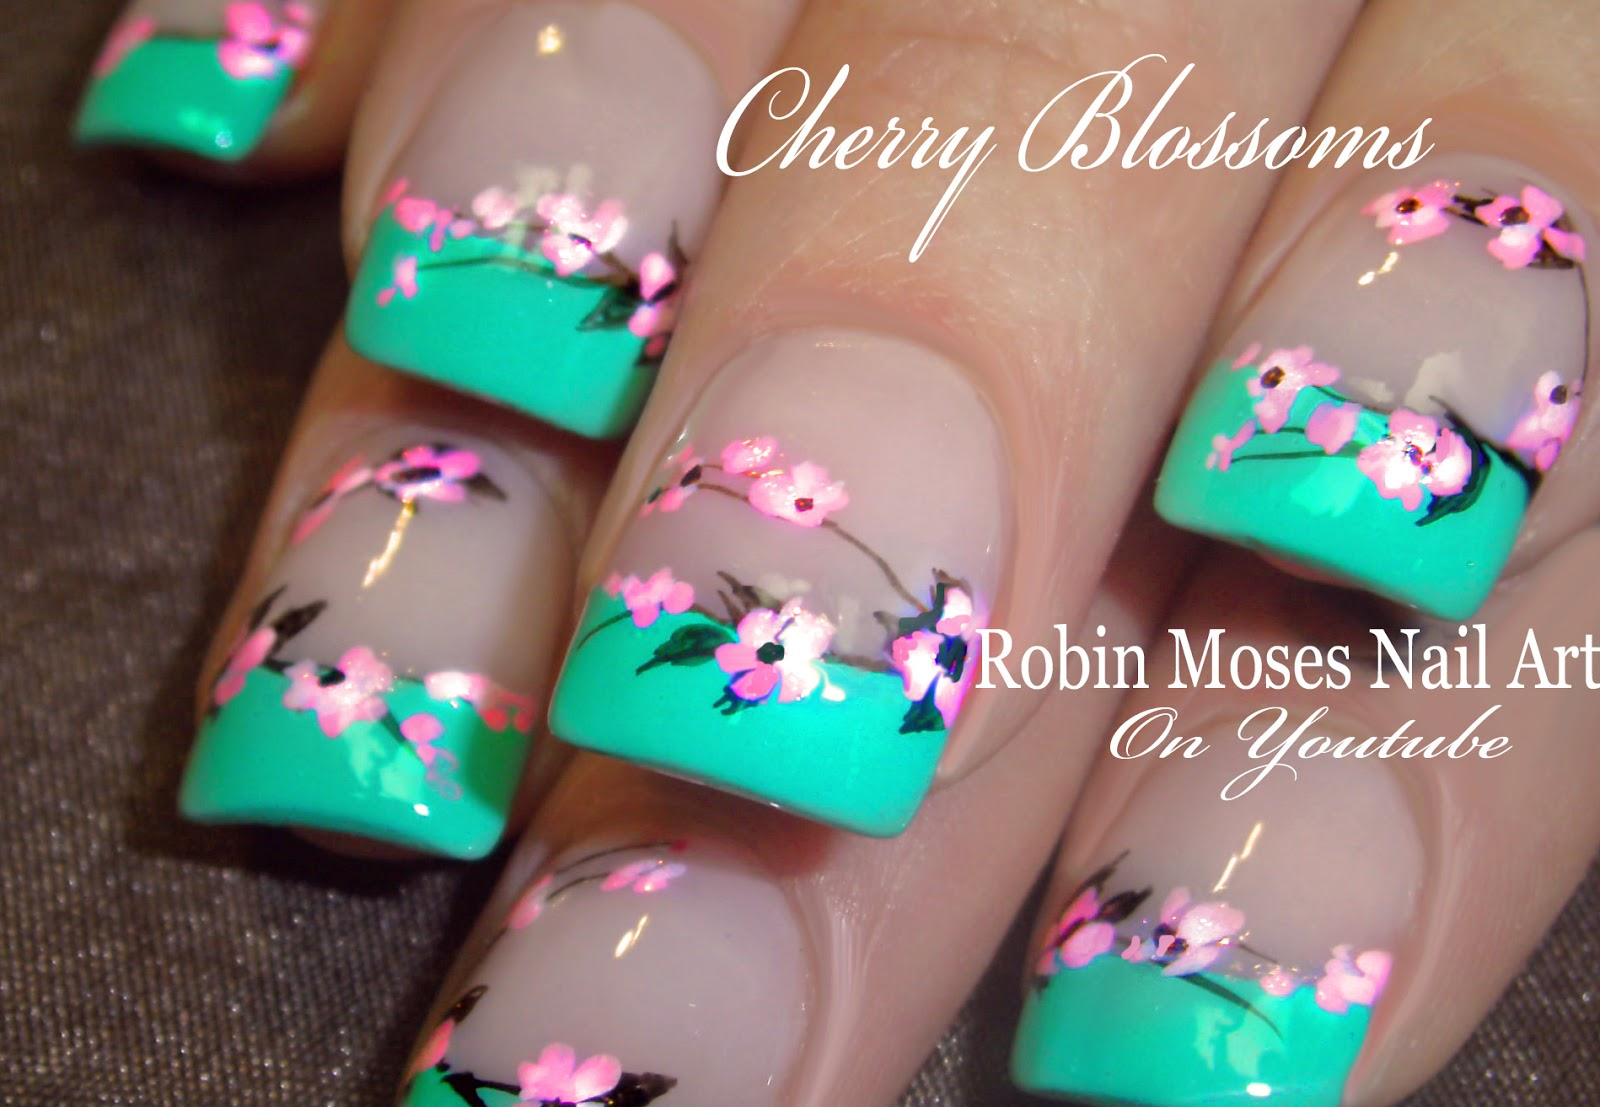 Cherry Blossom Nail Art 2016 Full Length Design